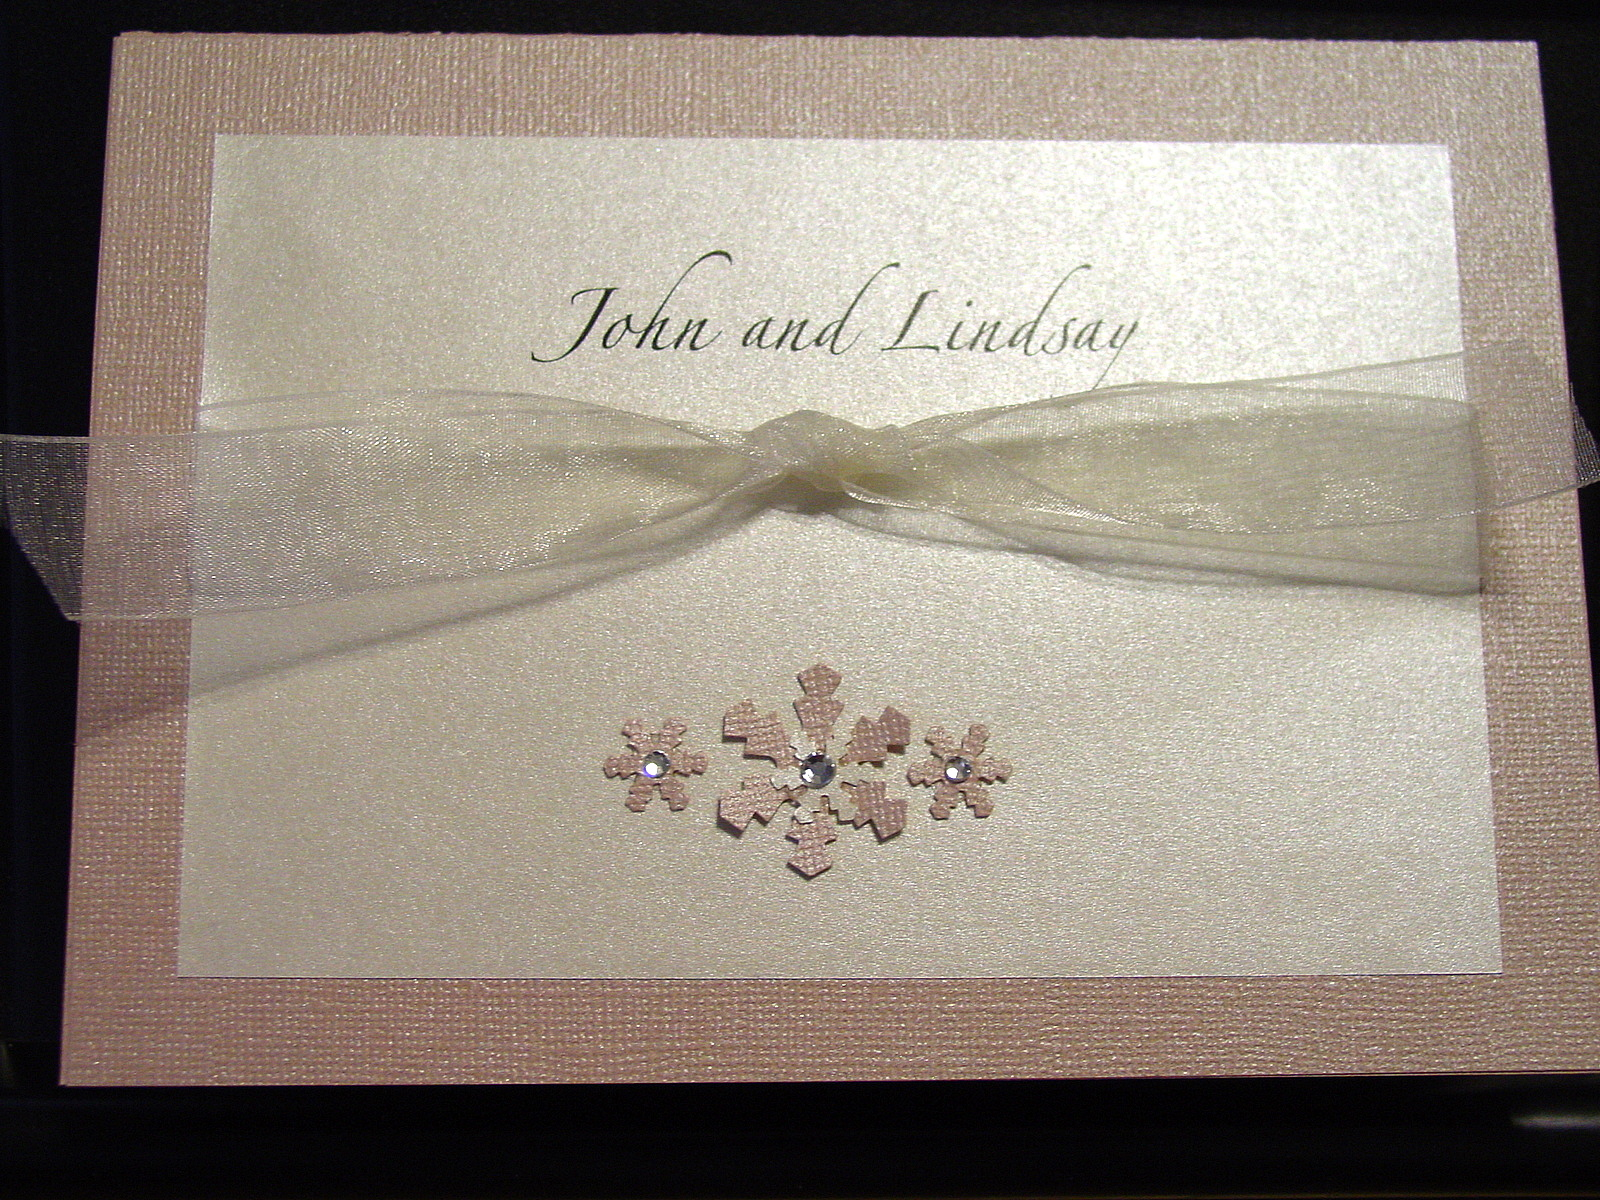 Lindsay and John - Invitations